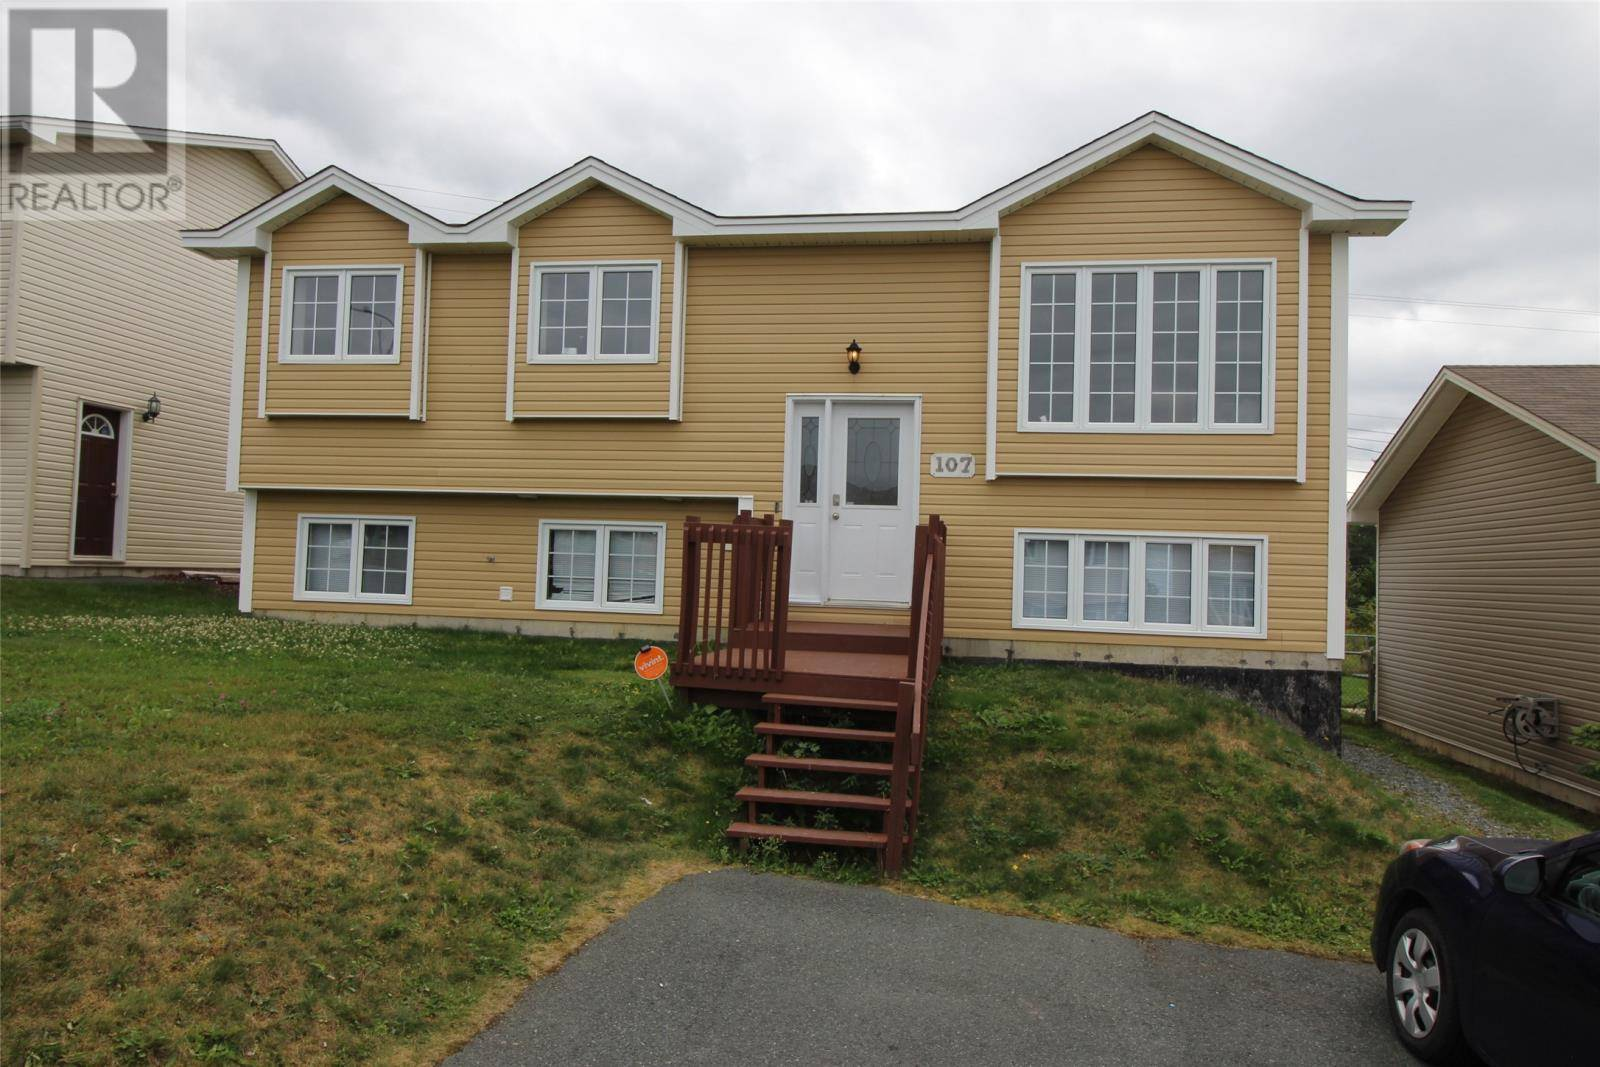 House for sale at 107 Hibbs Rd Conception Bay South Newfoundland - MLS: 1206949